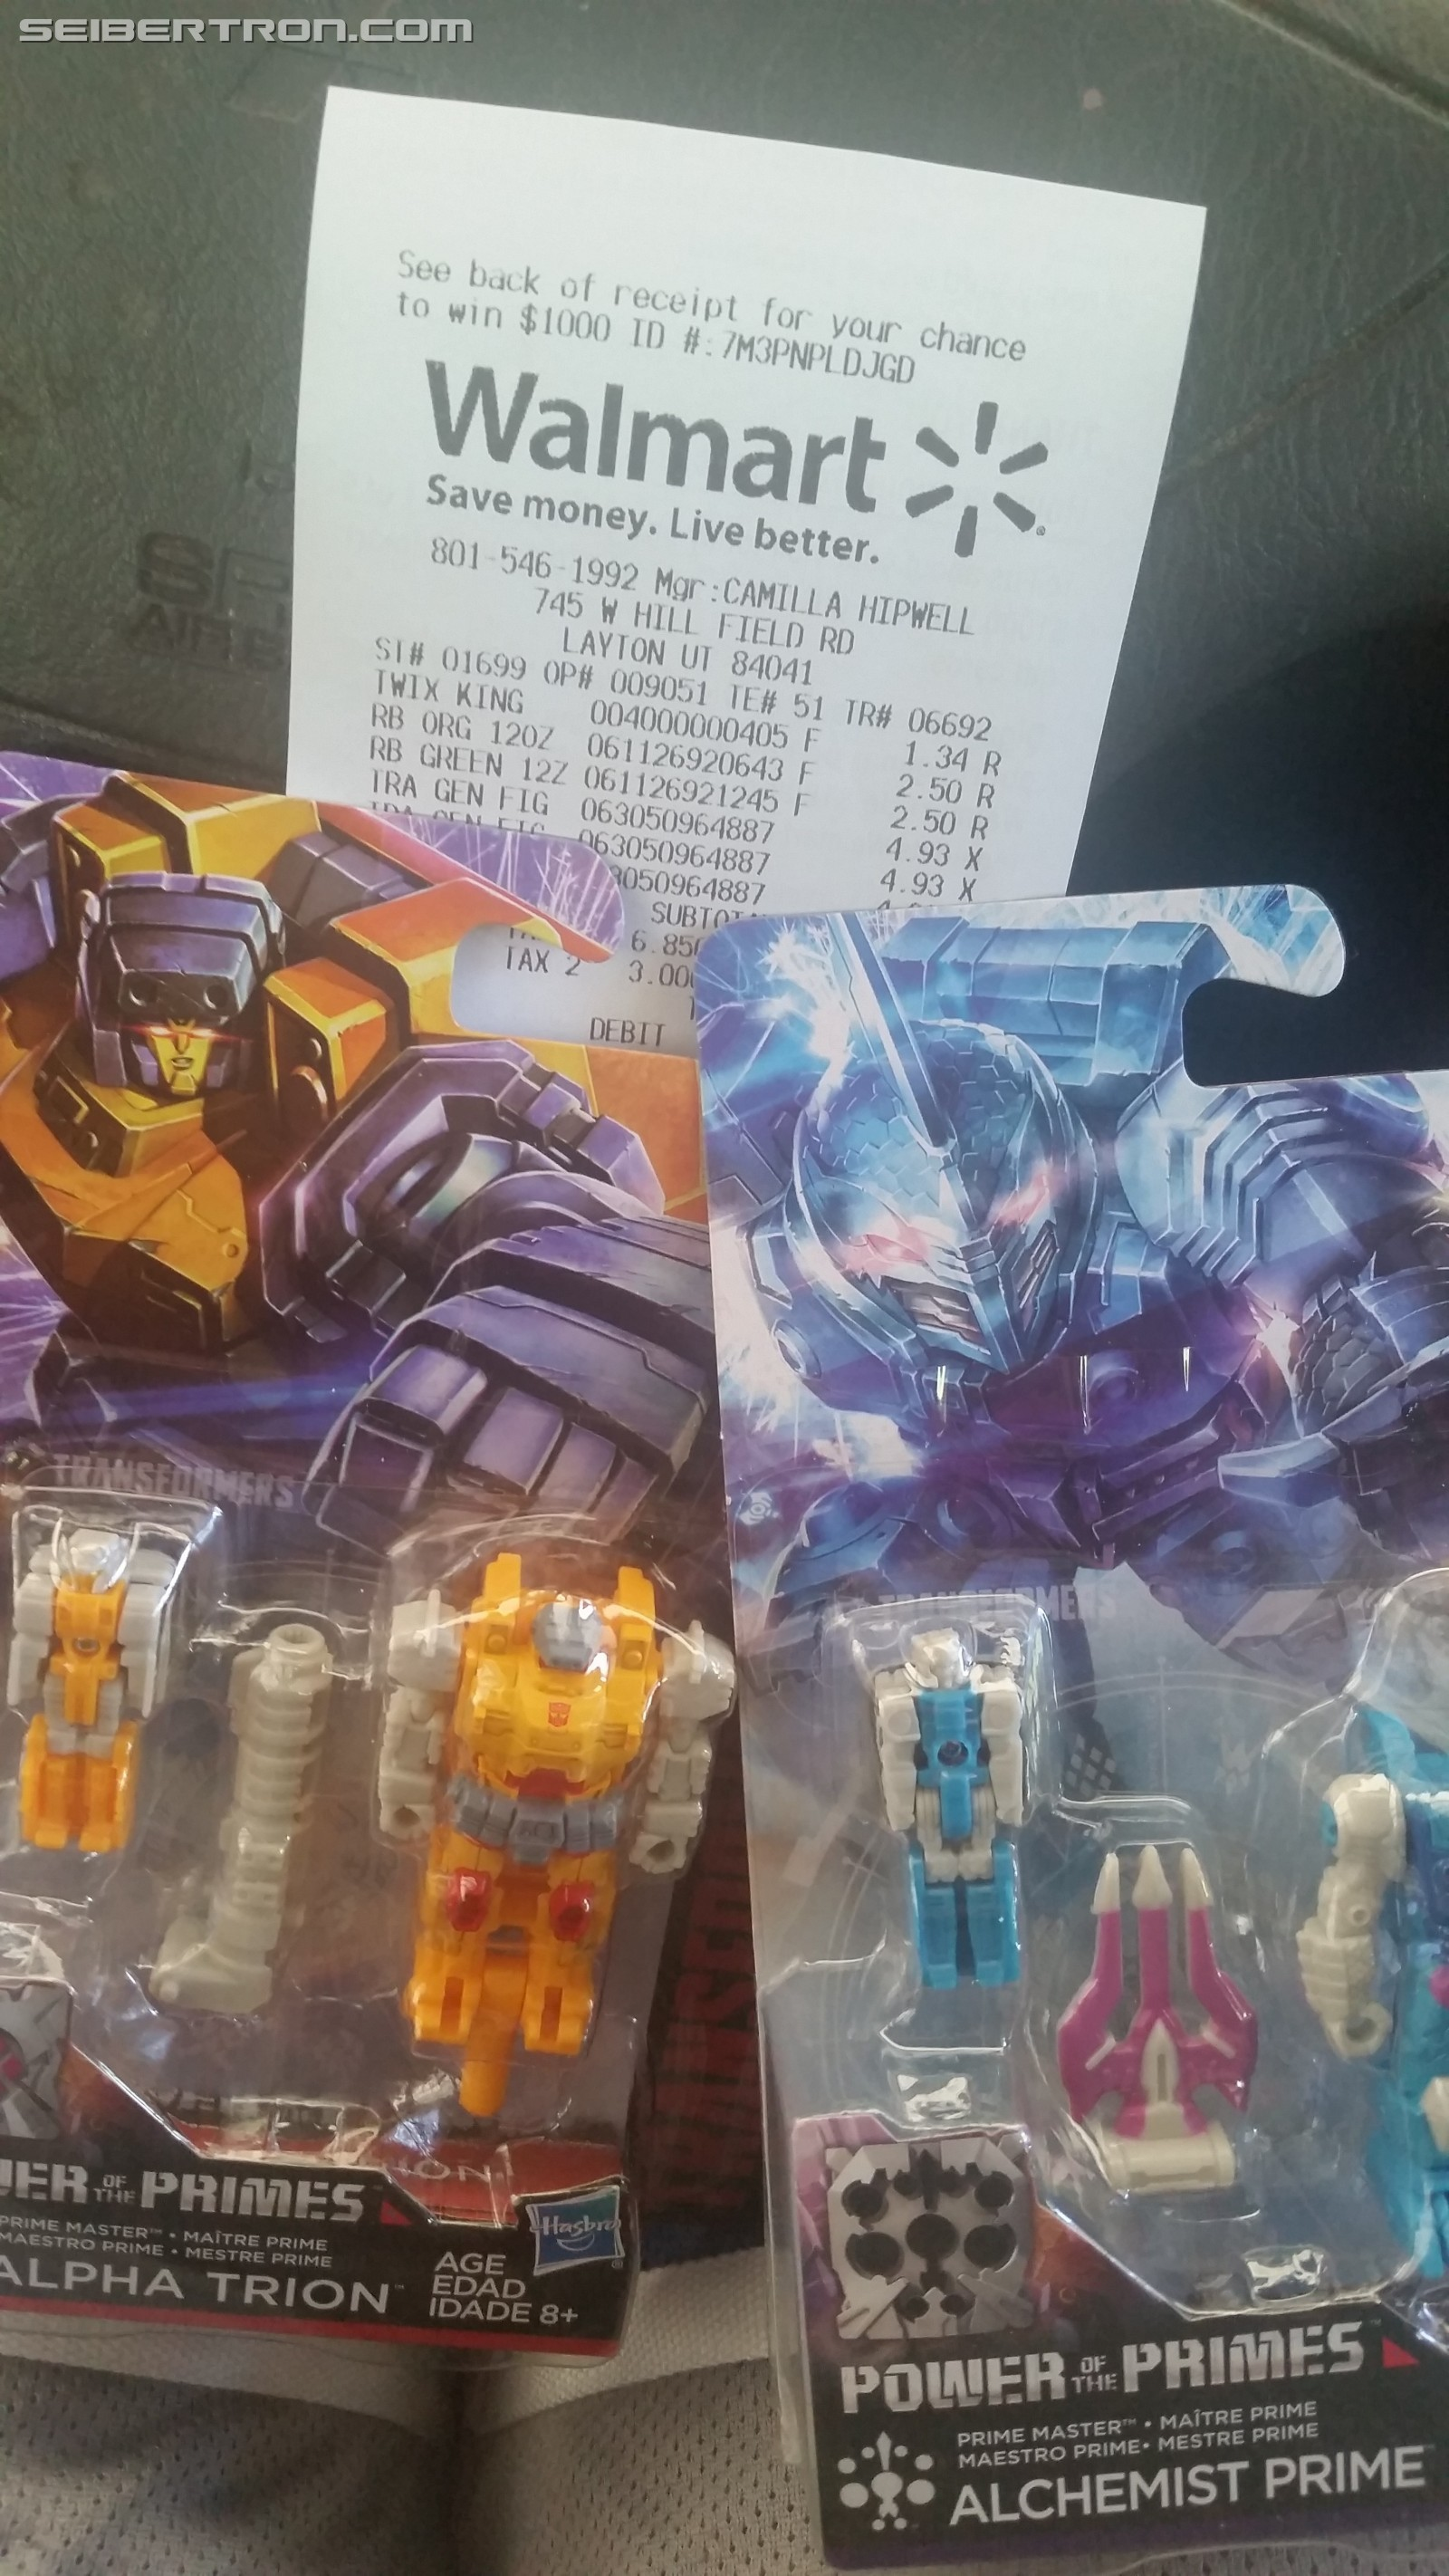 Transformers News: Transformers Power of the Primes Prime Masters Wave 2 Sighted at Retail